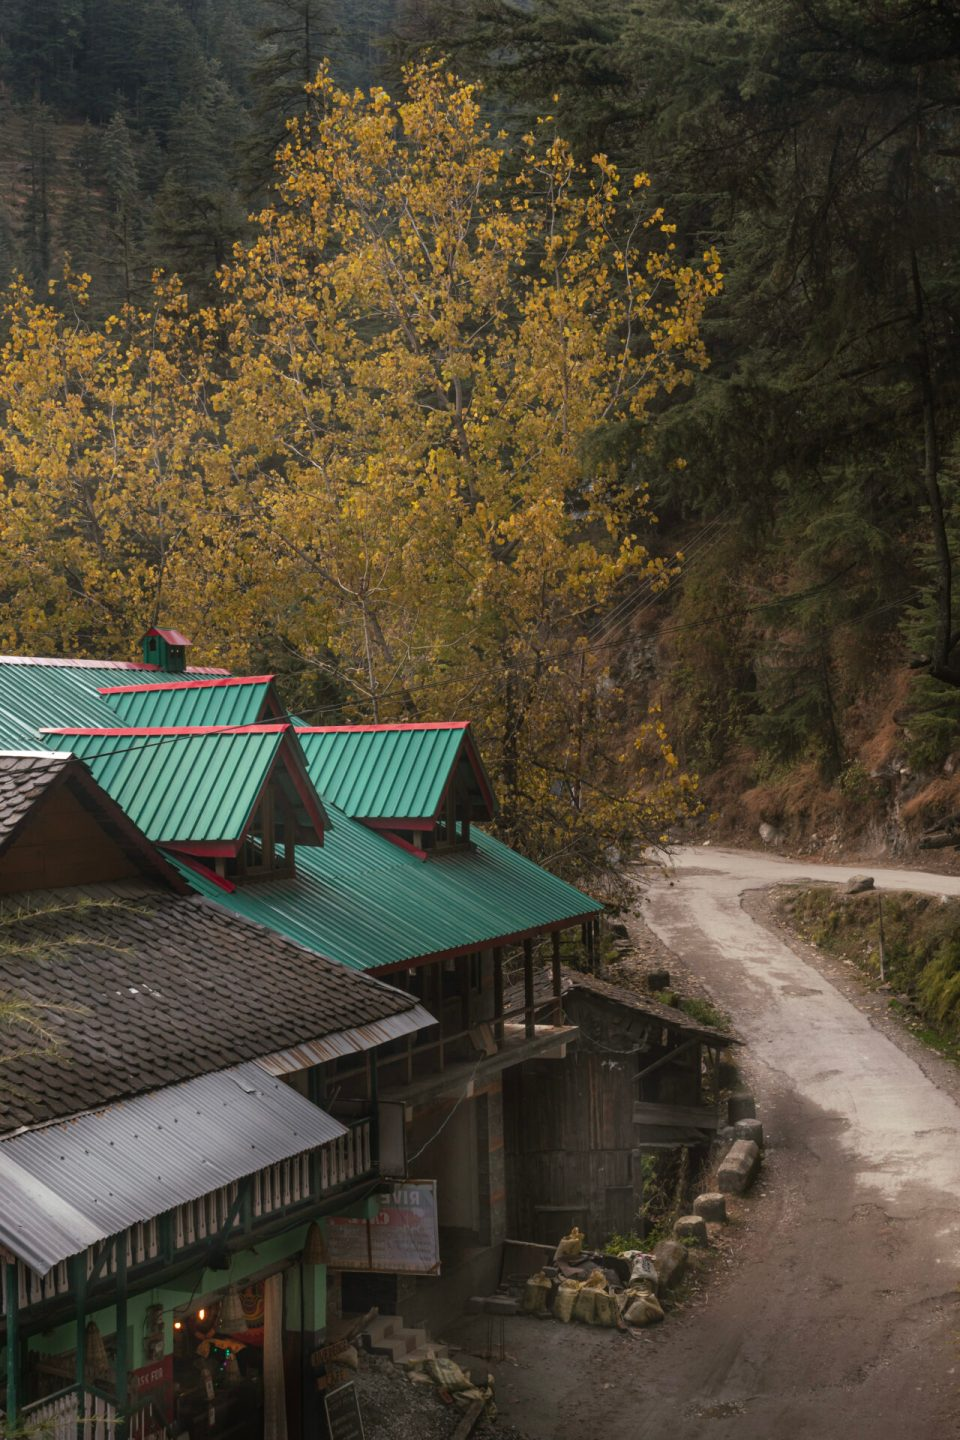 House and Colorful tree in Jibhi Valley